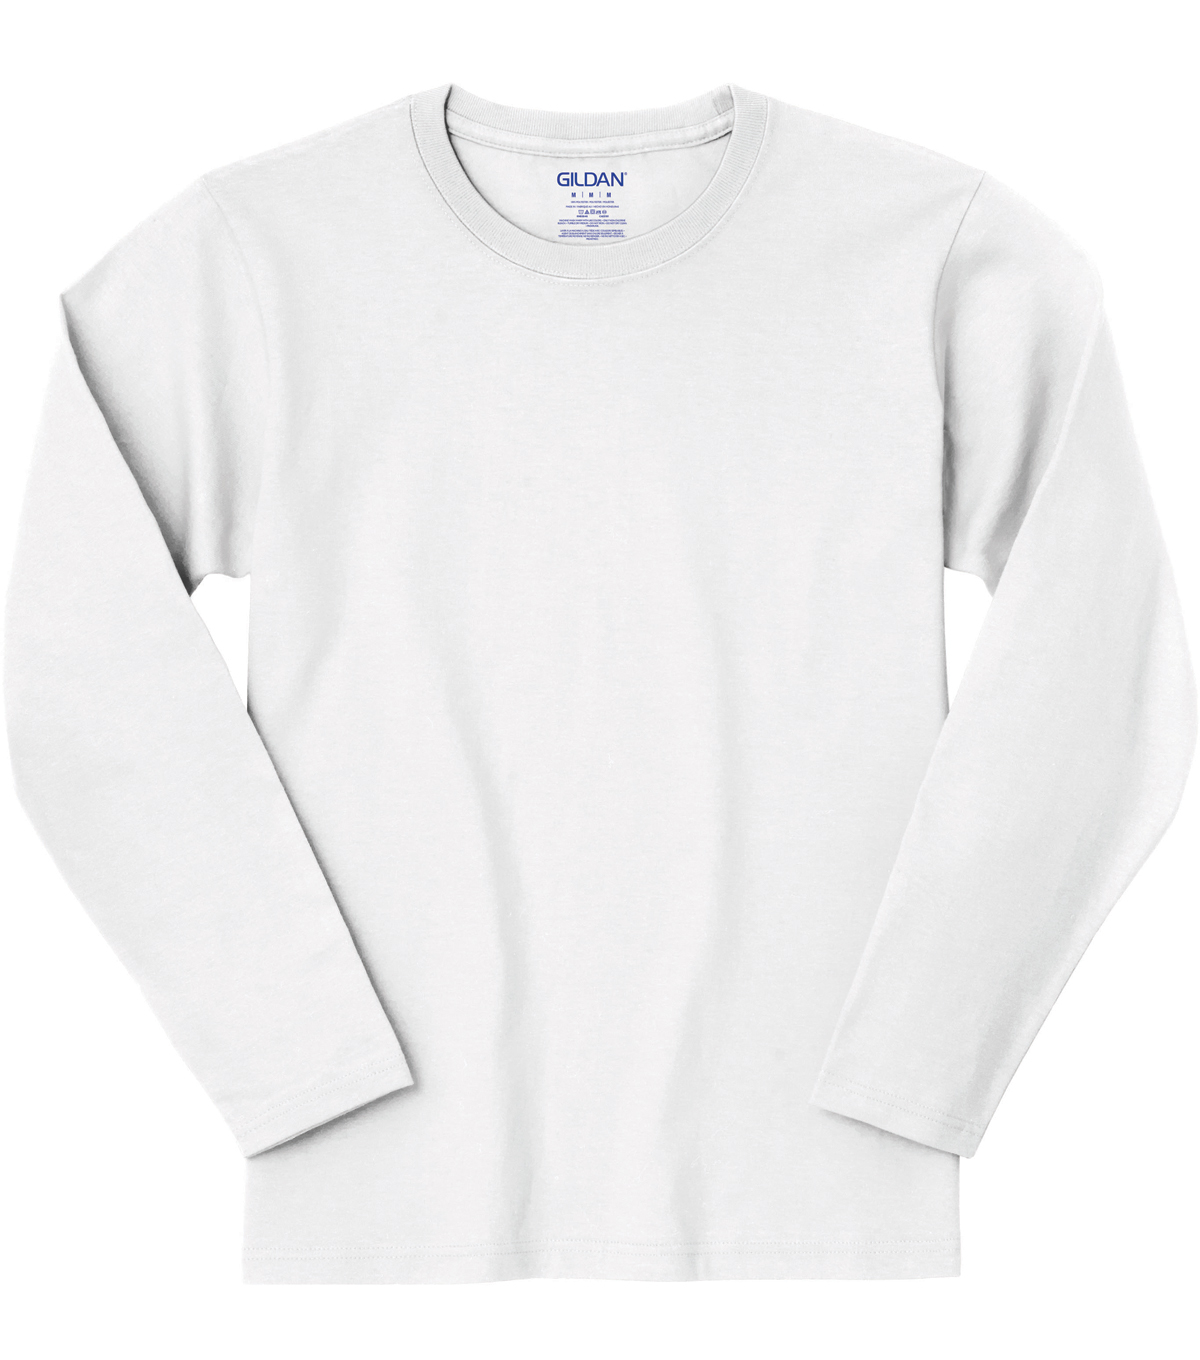 Gildan Small Youth Long Sleeve T-shirt, White